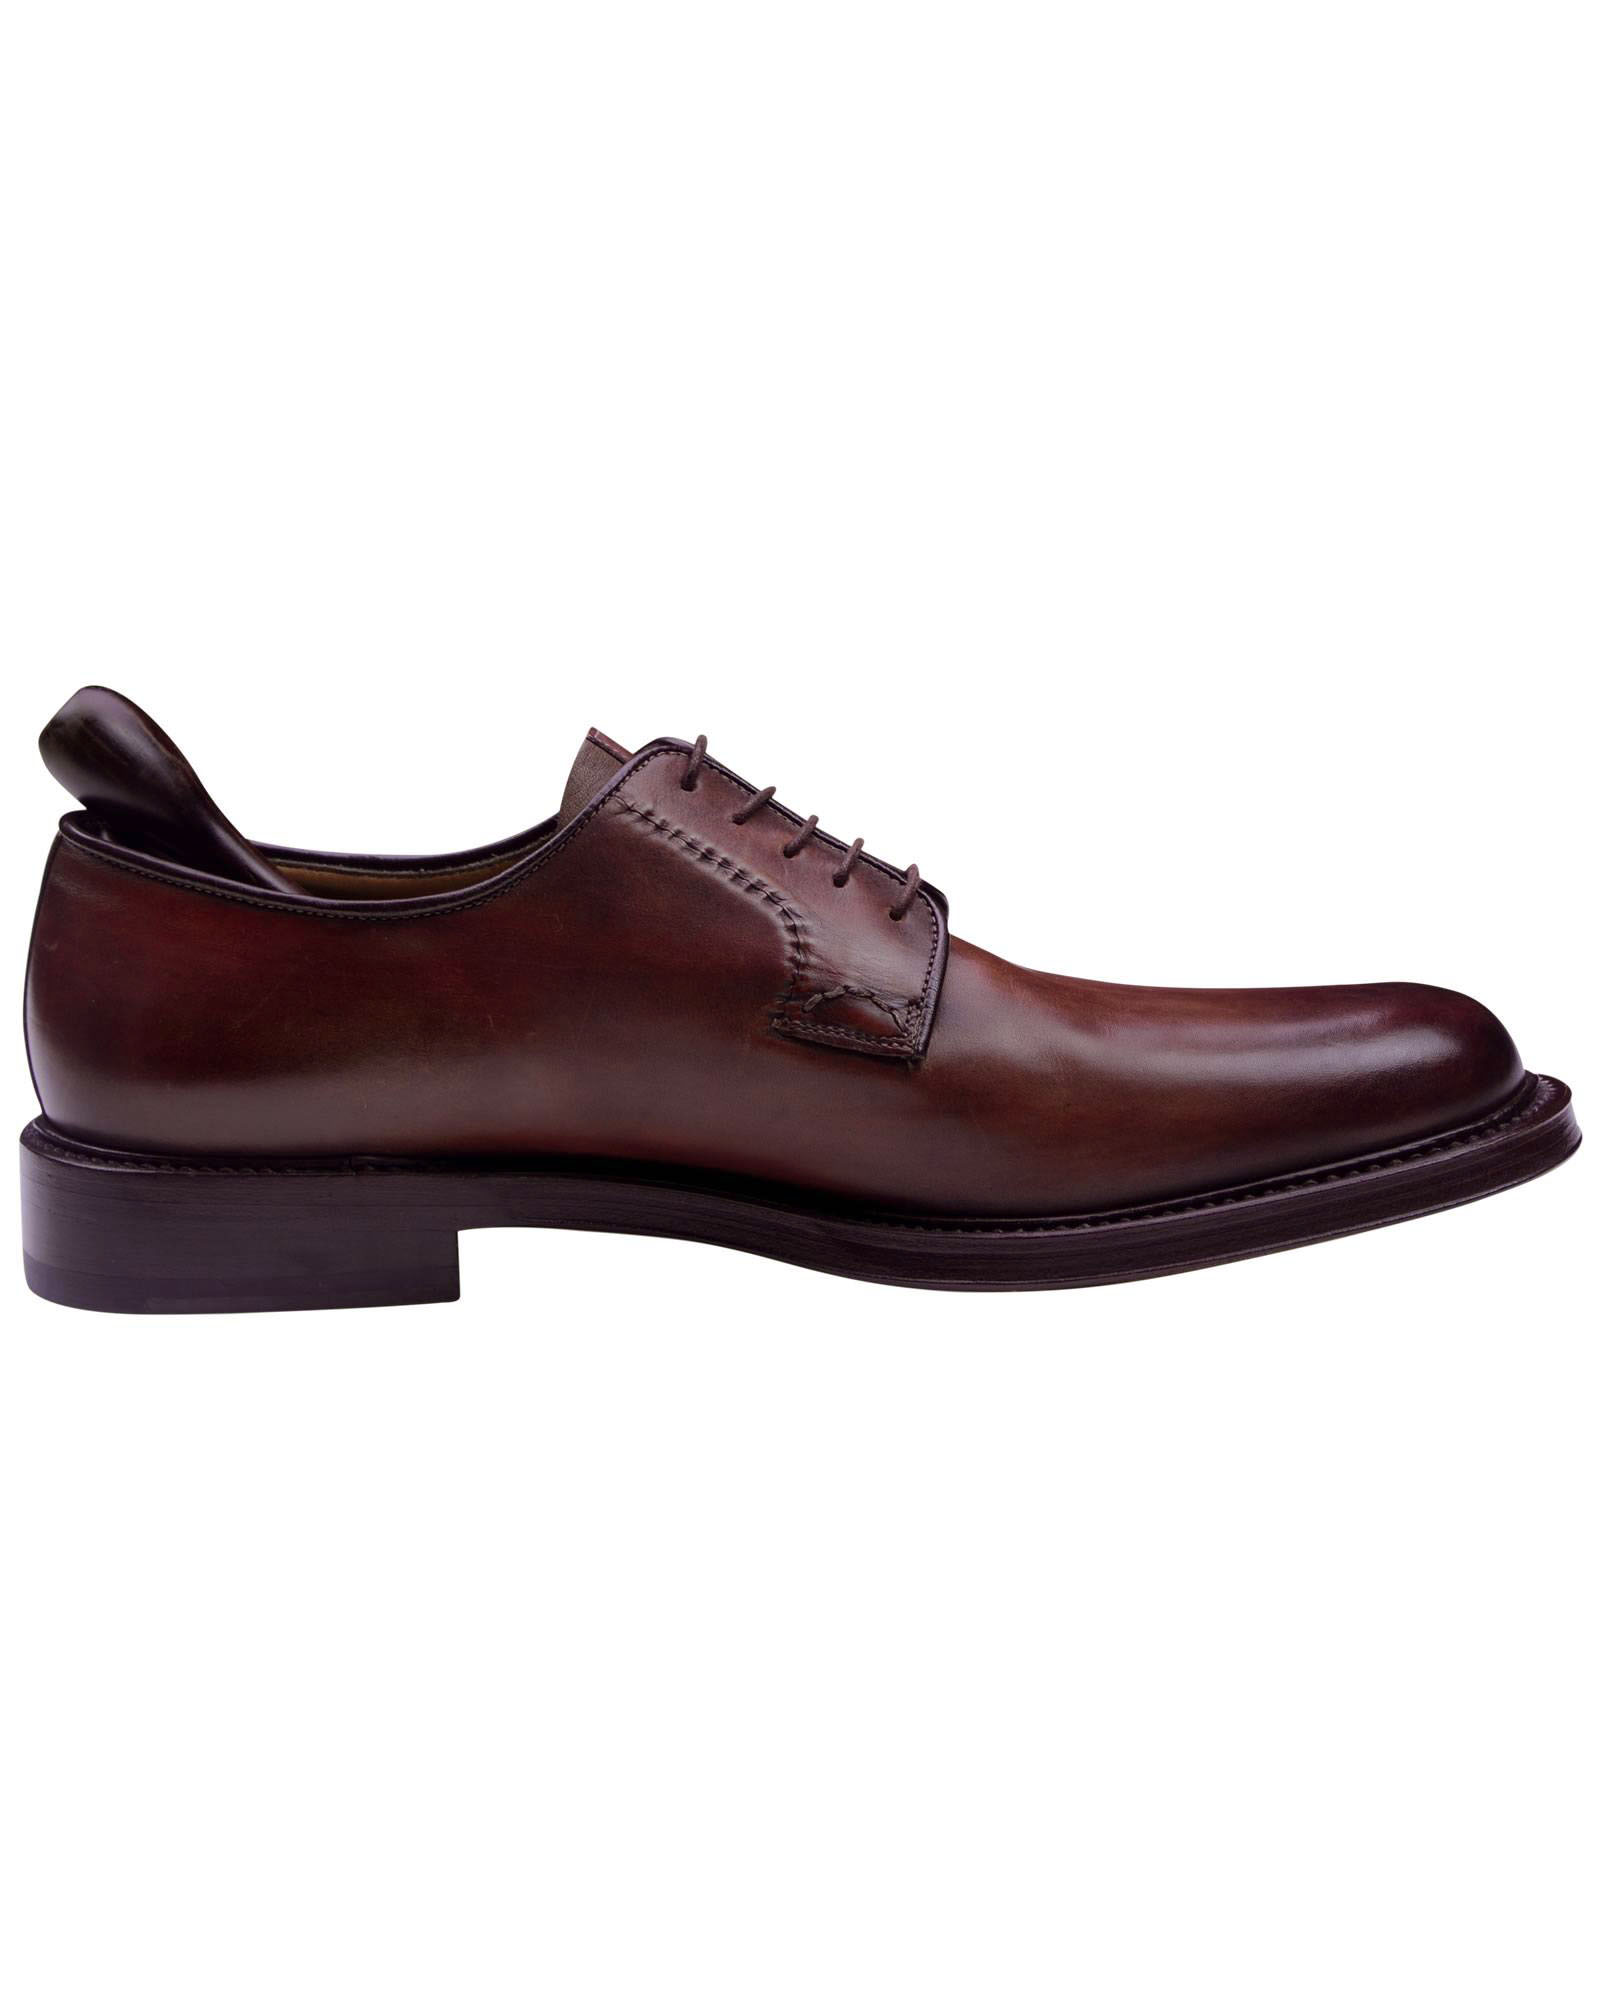 Santoni Brown Dress Shoes